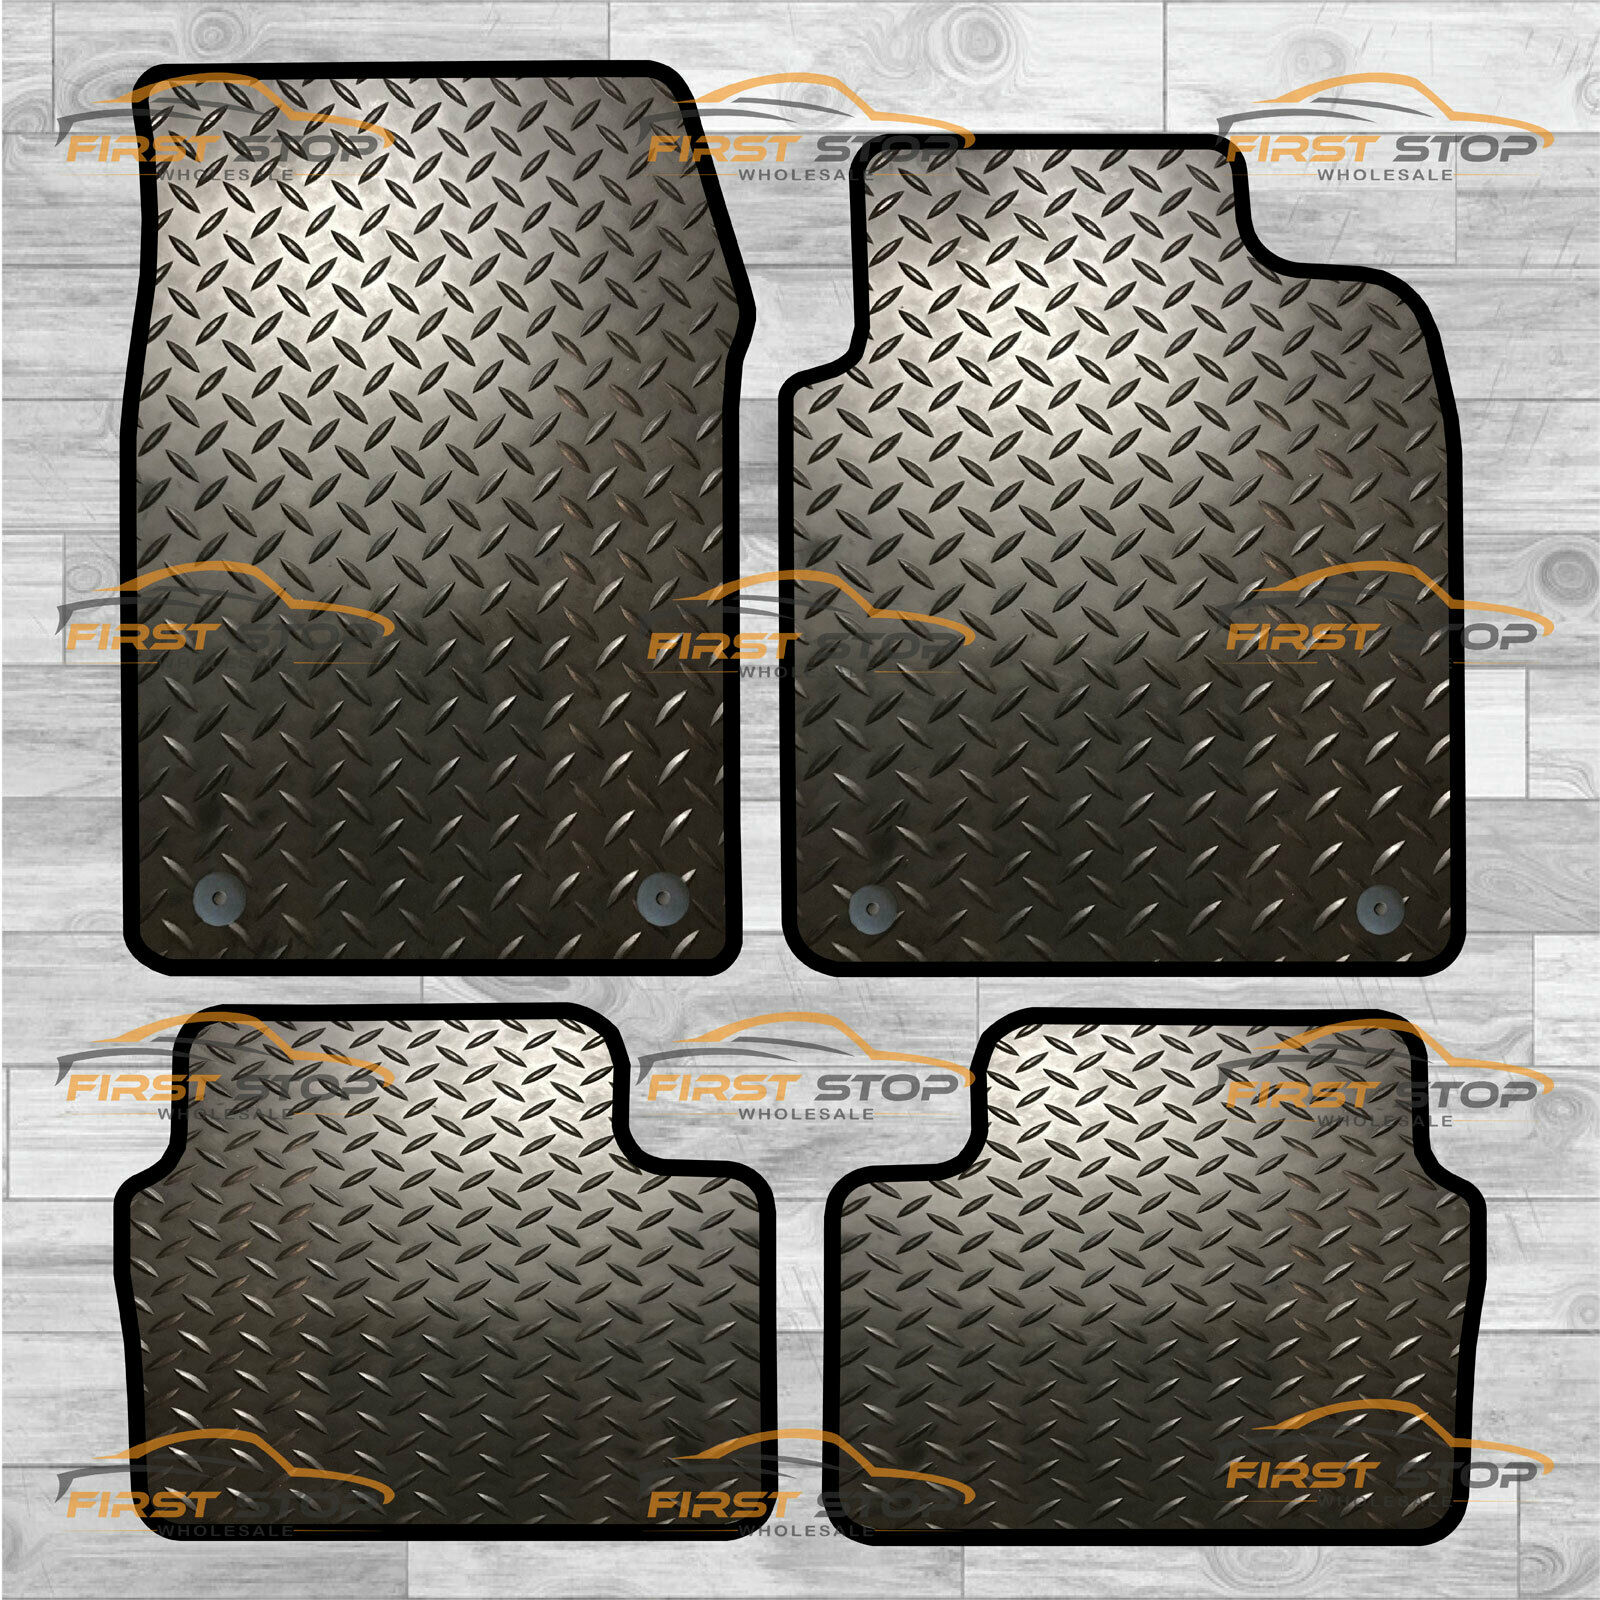 10-15 VAUXHALL ASTRA HEAVY DUTY RUBBER CAR FLOOR MAT